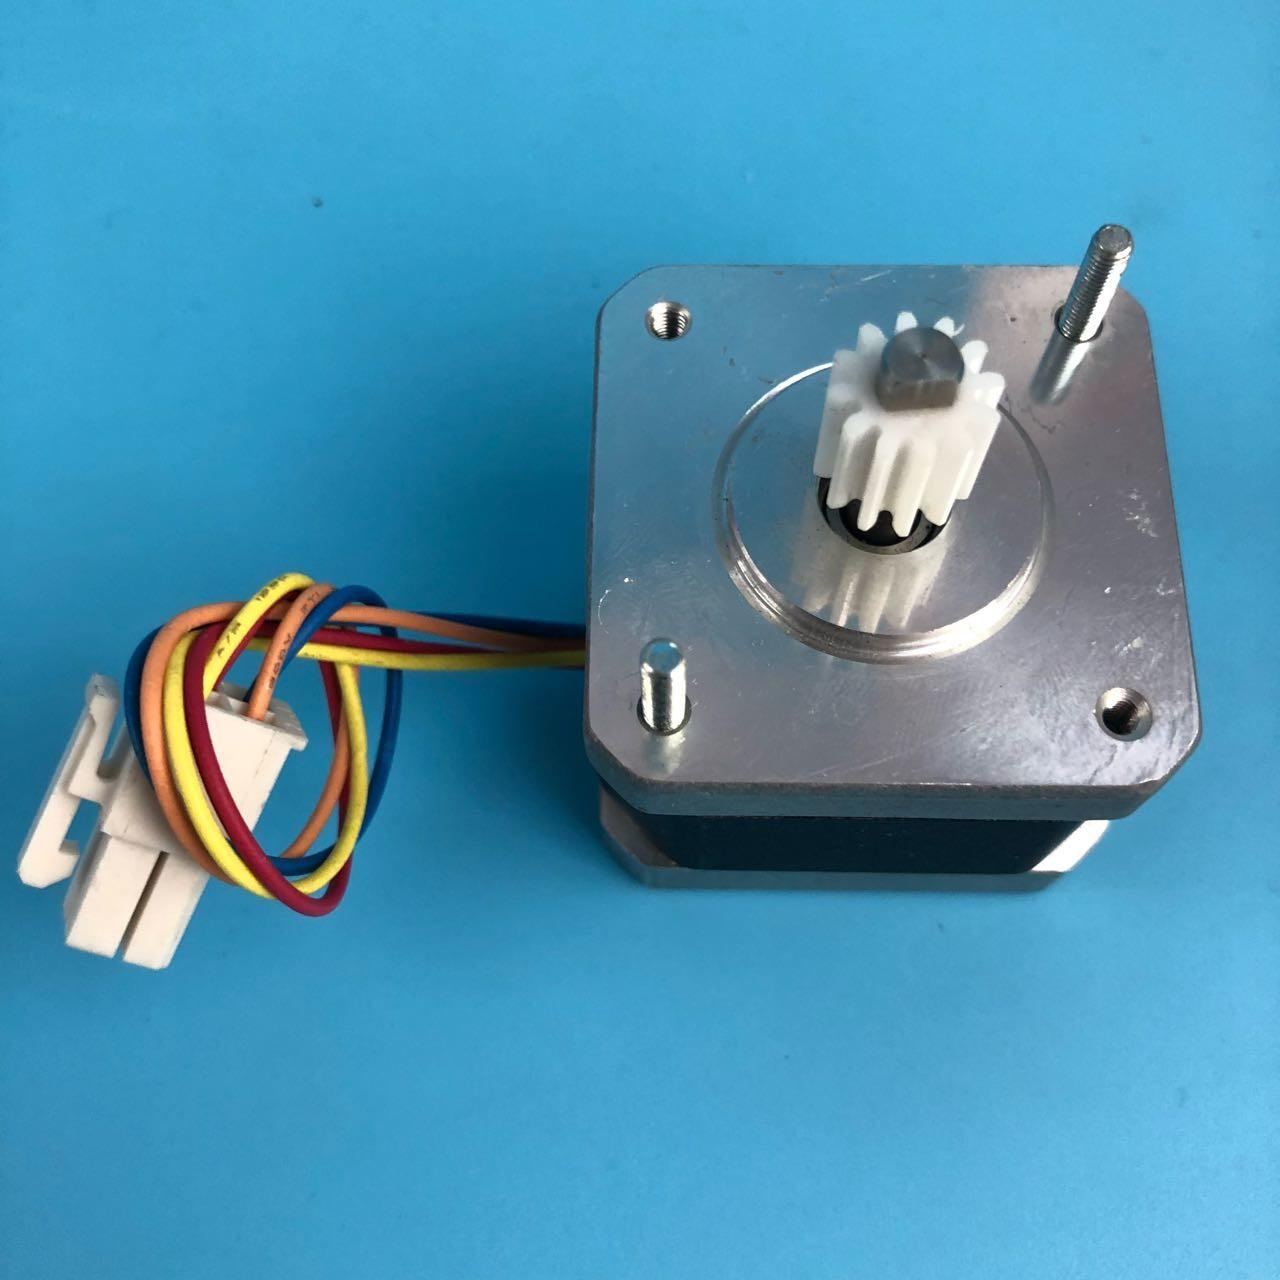 Buy cheap Solenoid Valve NCR ATM Parts 0090017048 NCR Presenter Stepper Motor 009-0017048 from wholesalers